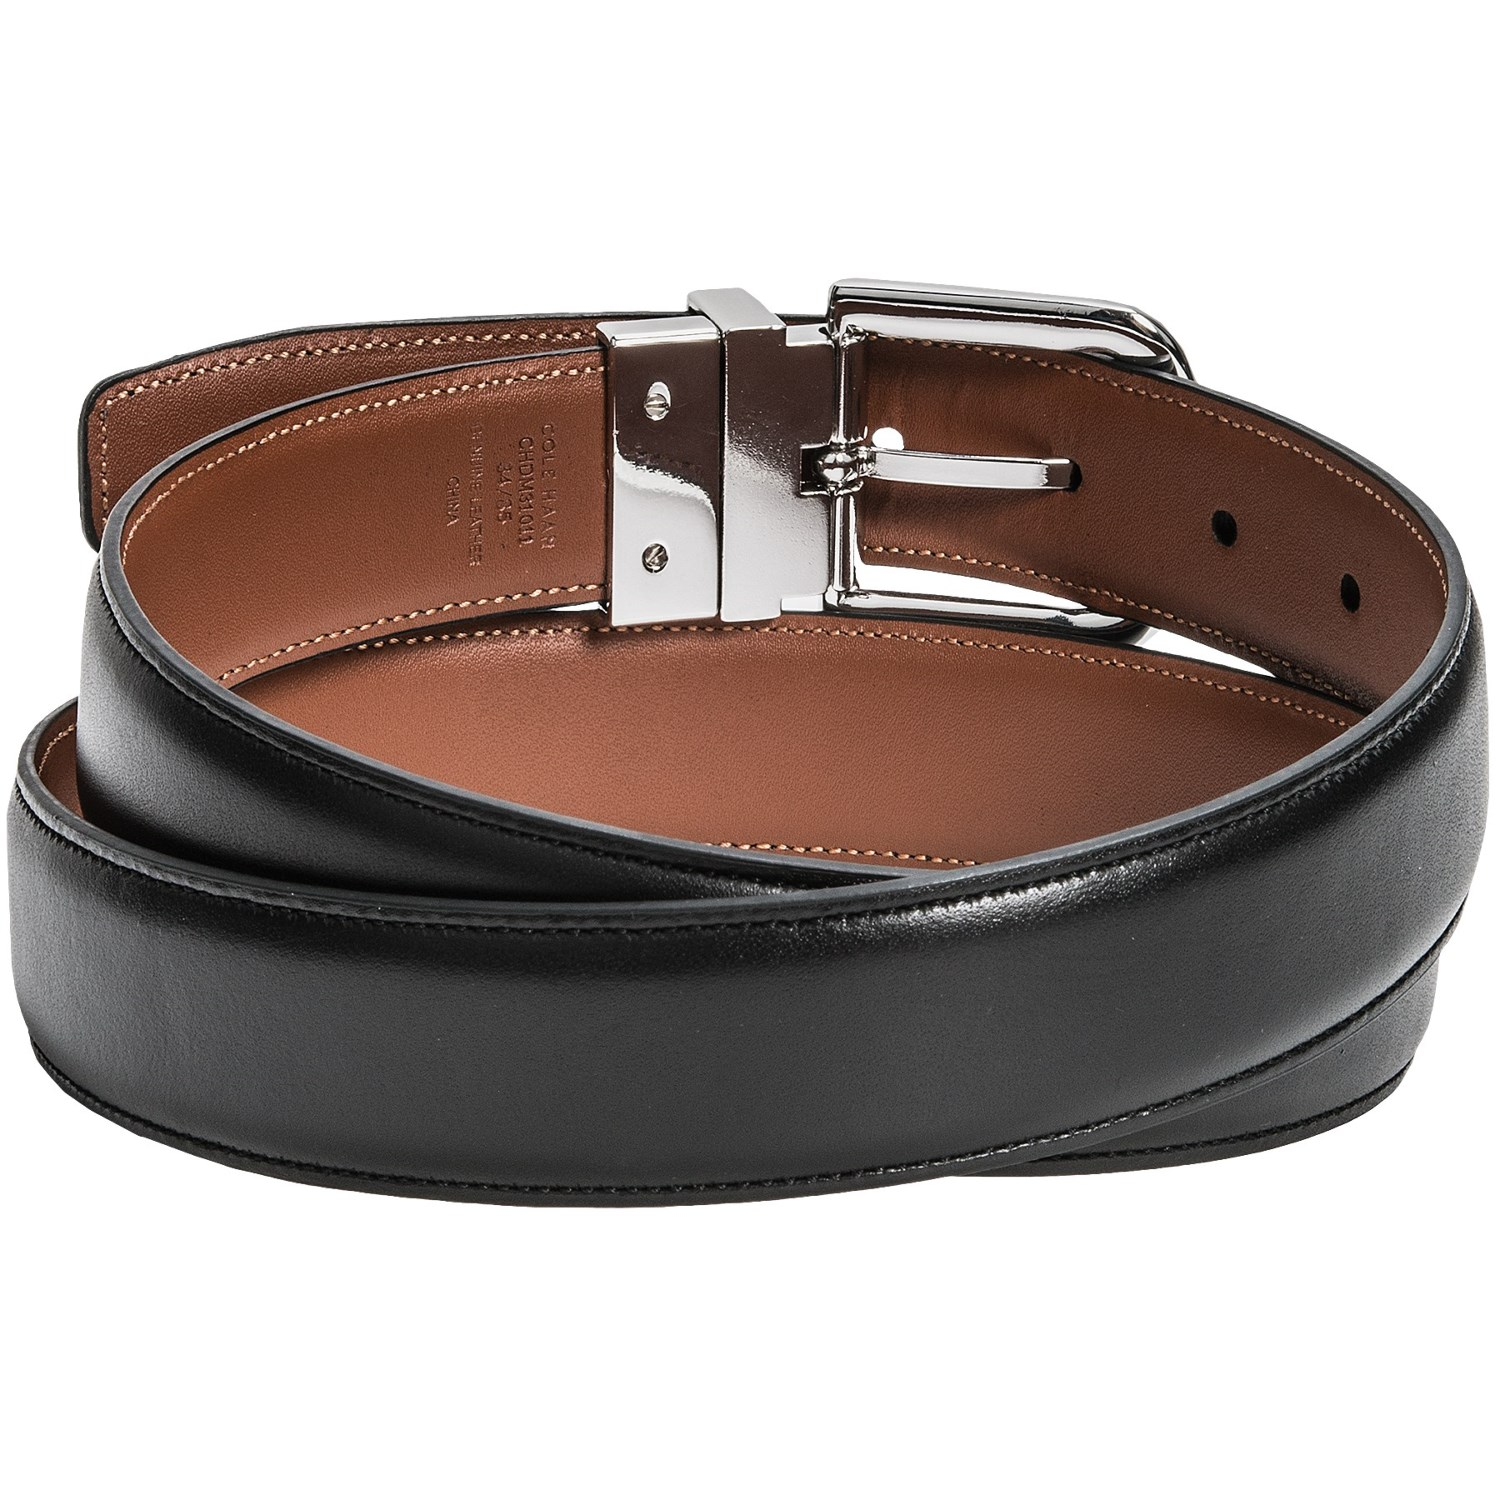 Our customers can now buy quality men's & women's genuine leather belts directly from us. We have one of the broadest selections available anywhere for men's & women's belts. All the leather belts are custom made to order, and available for shipping anywhere in the world.